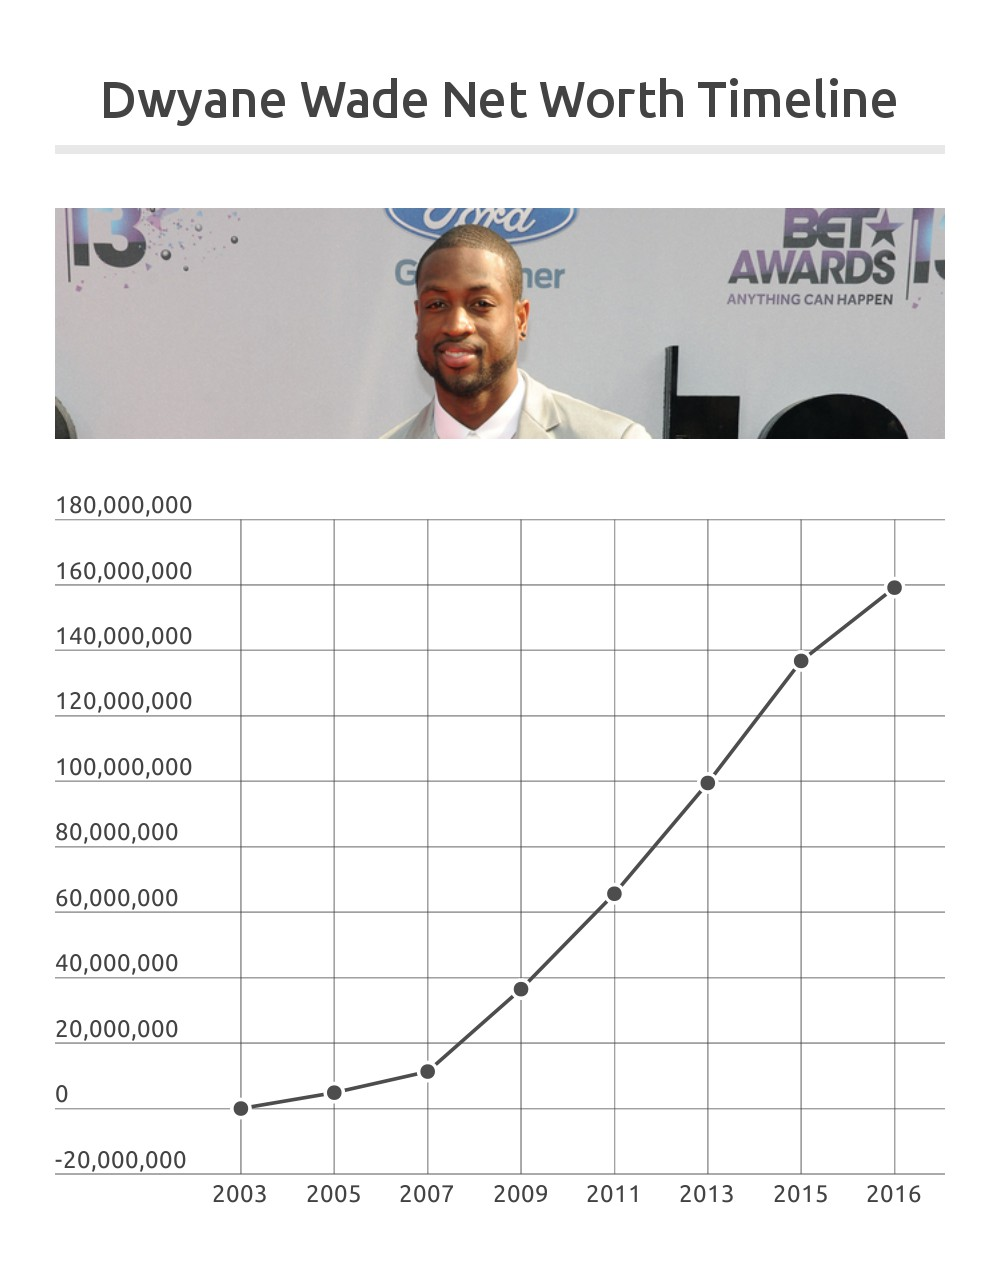 Dwyane Wade Net Worth Timeline